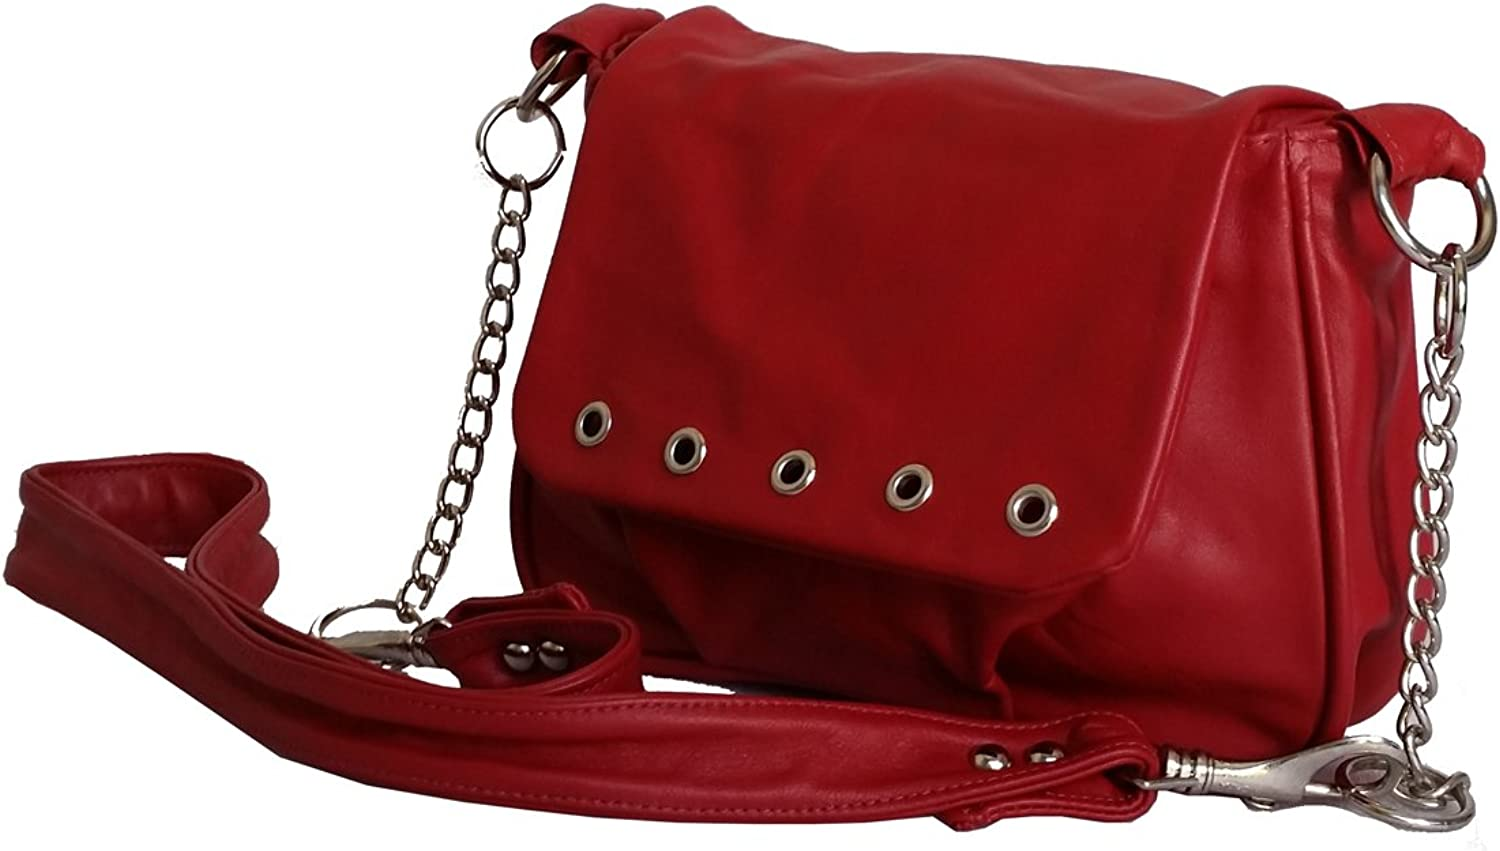 small leather shoulder bag Red leather crossbody bag  Leather bag women Leather Handbag for women leather Bag red leather purse